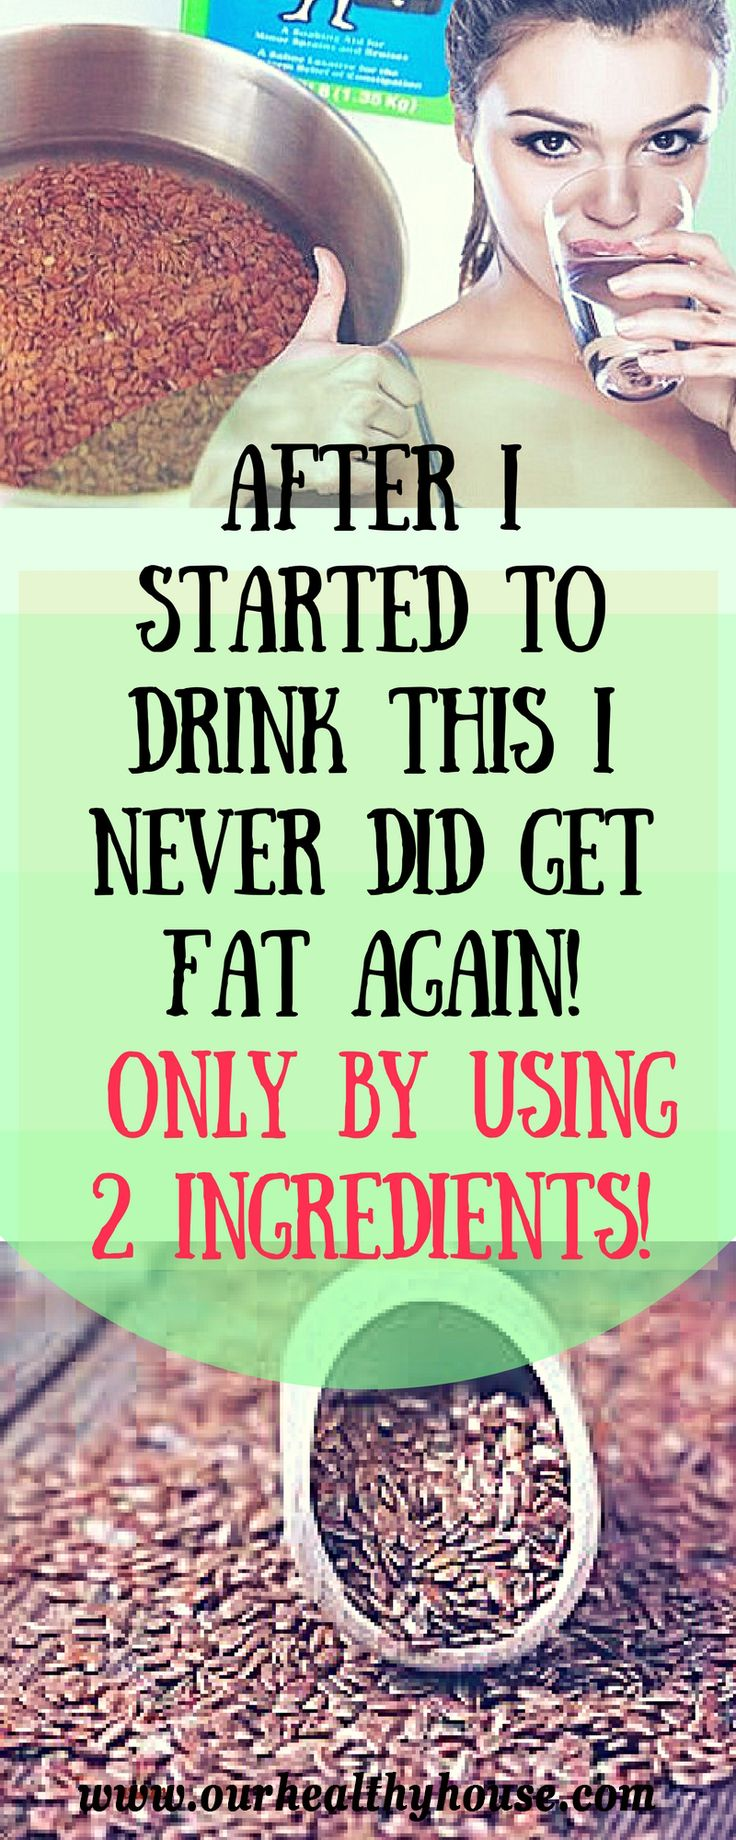 After I Started Drinking This I Never Got Fat Again! I Only Used 2 Ingredients